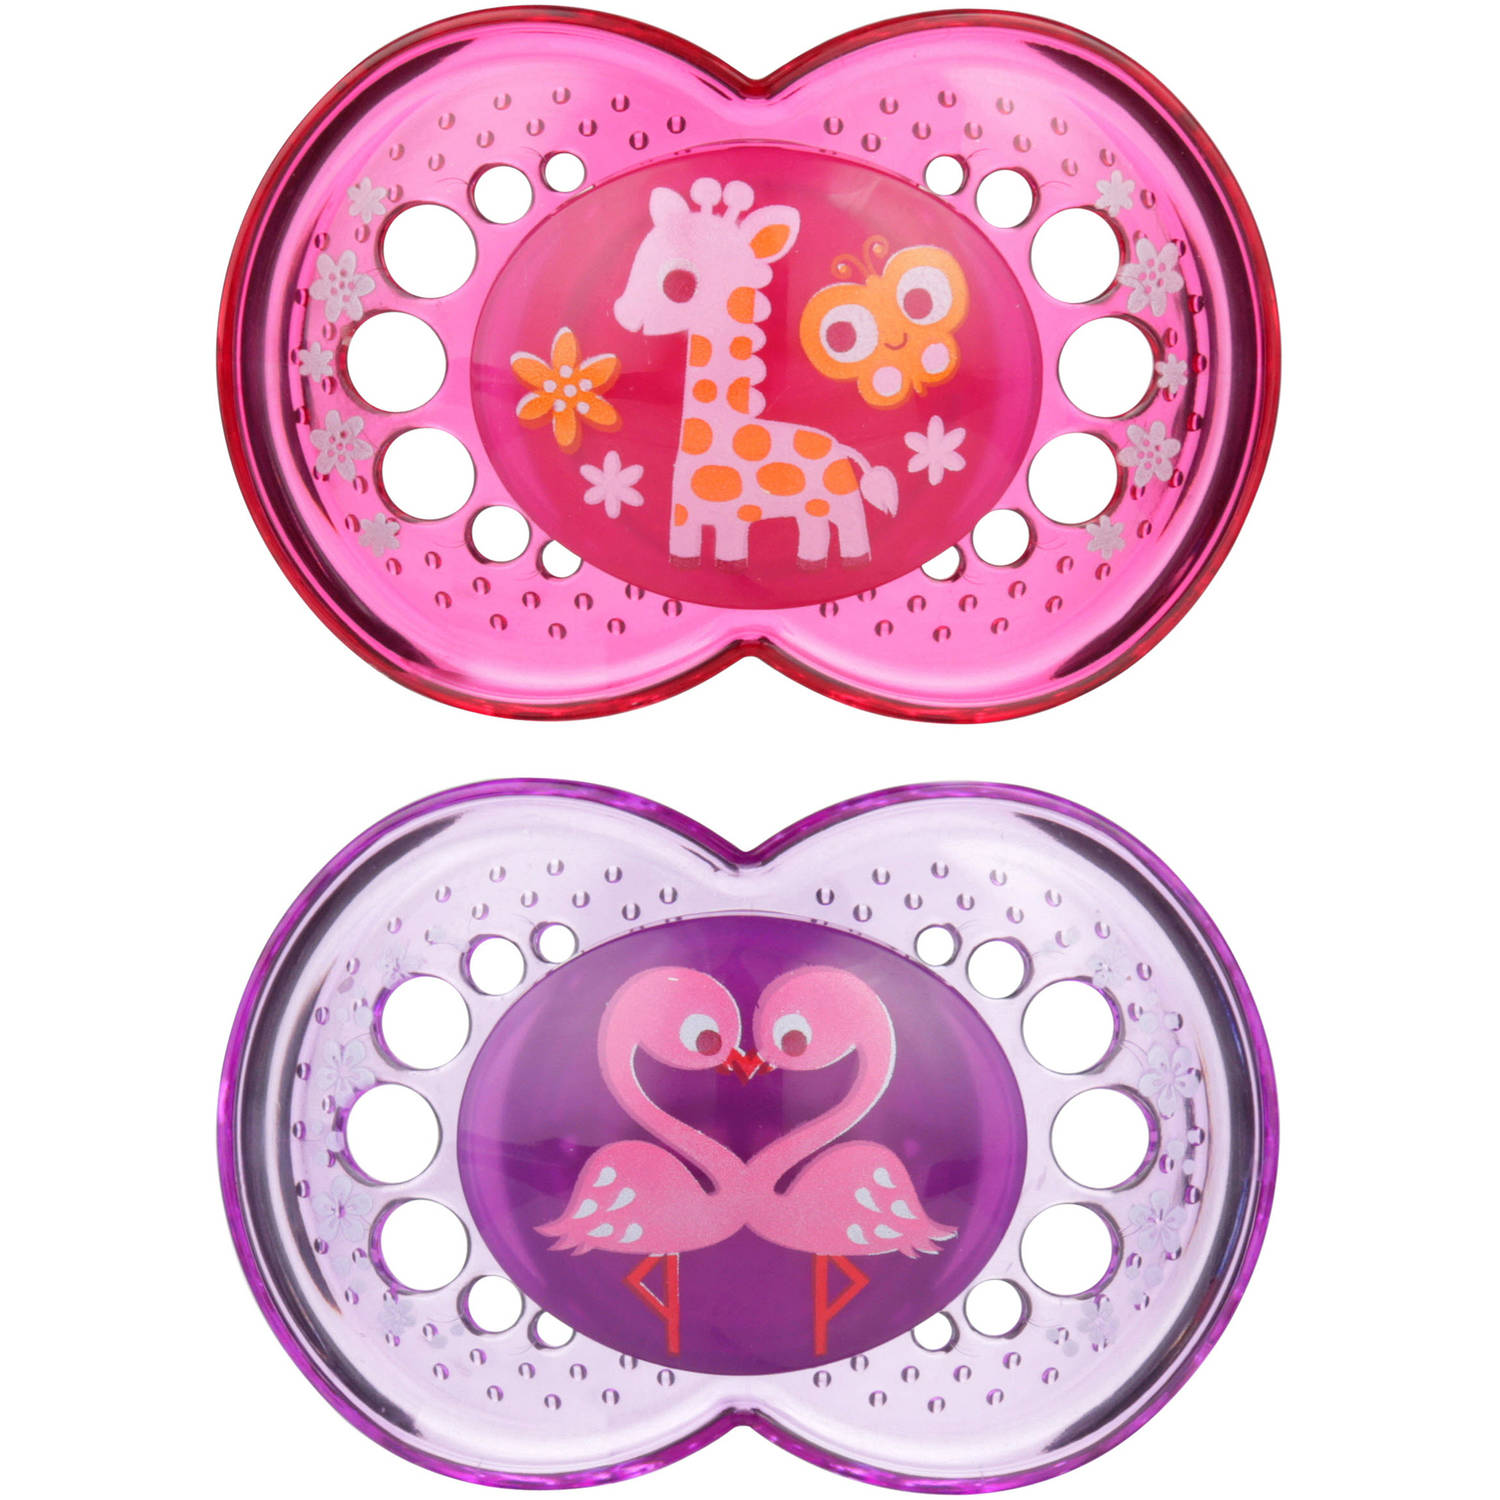 MAM Crystal Orthodontic Pacifier, 6+ Months, 2 Pacifiers, Girl